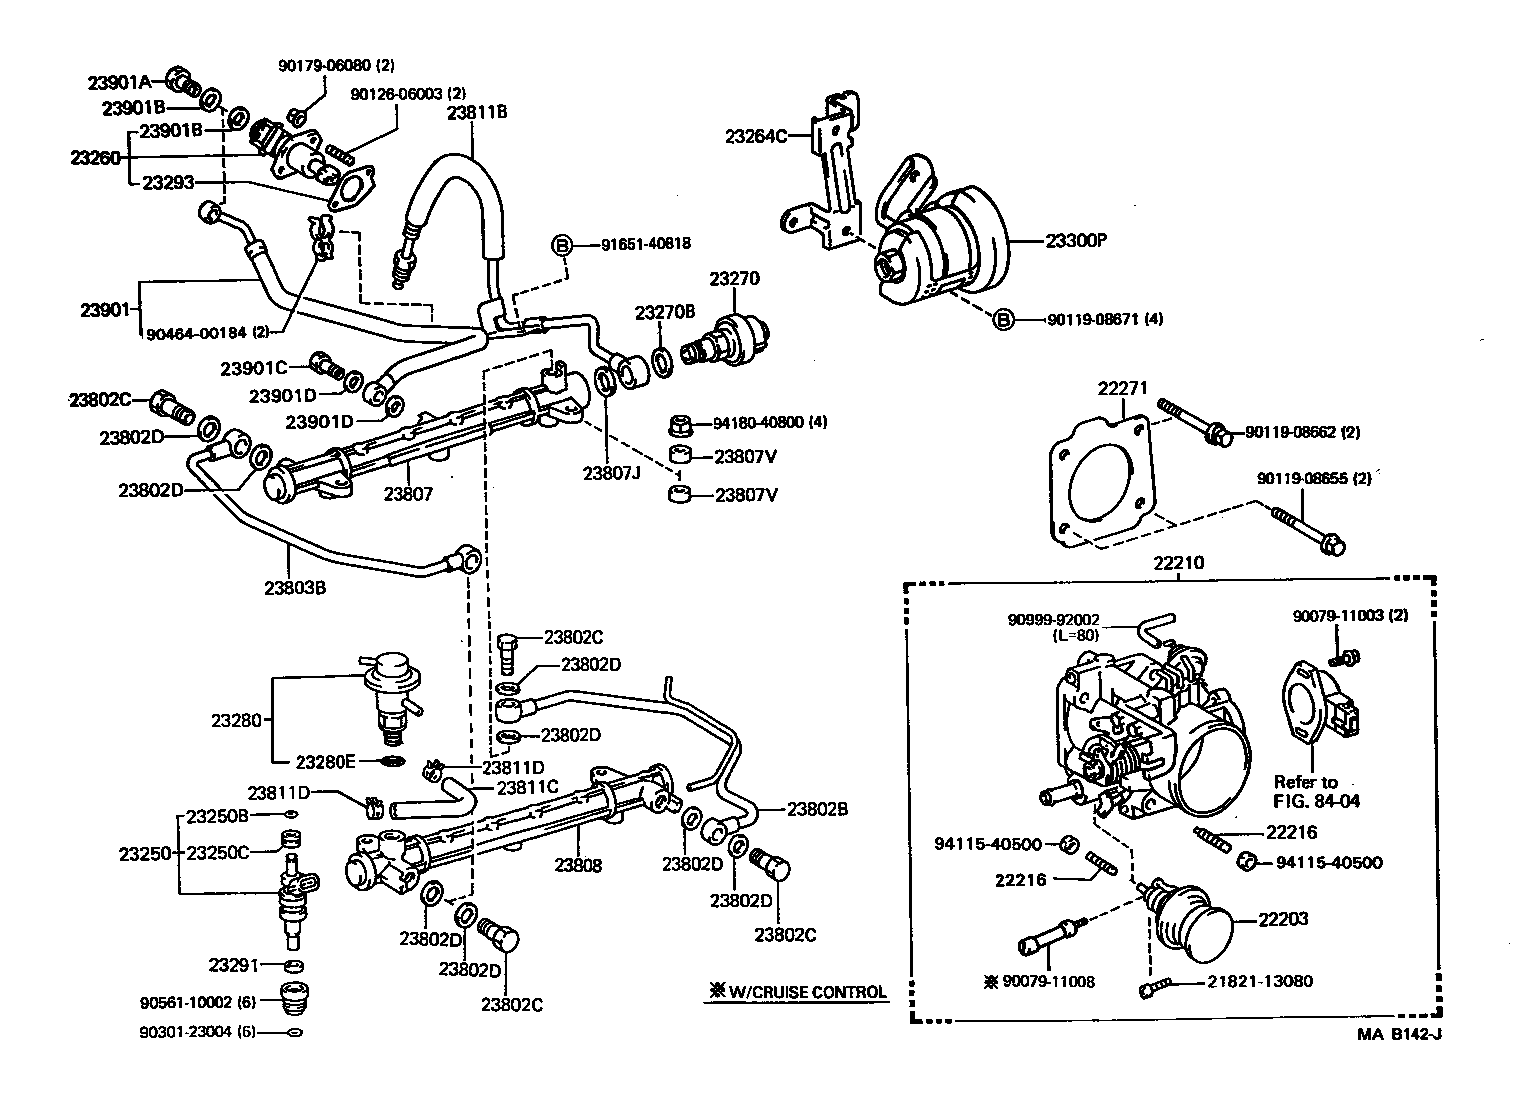 Fuel Injection System Illust No 1 Of 2 3vze P Toyota 4 Runner Truck Rn8 90 12